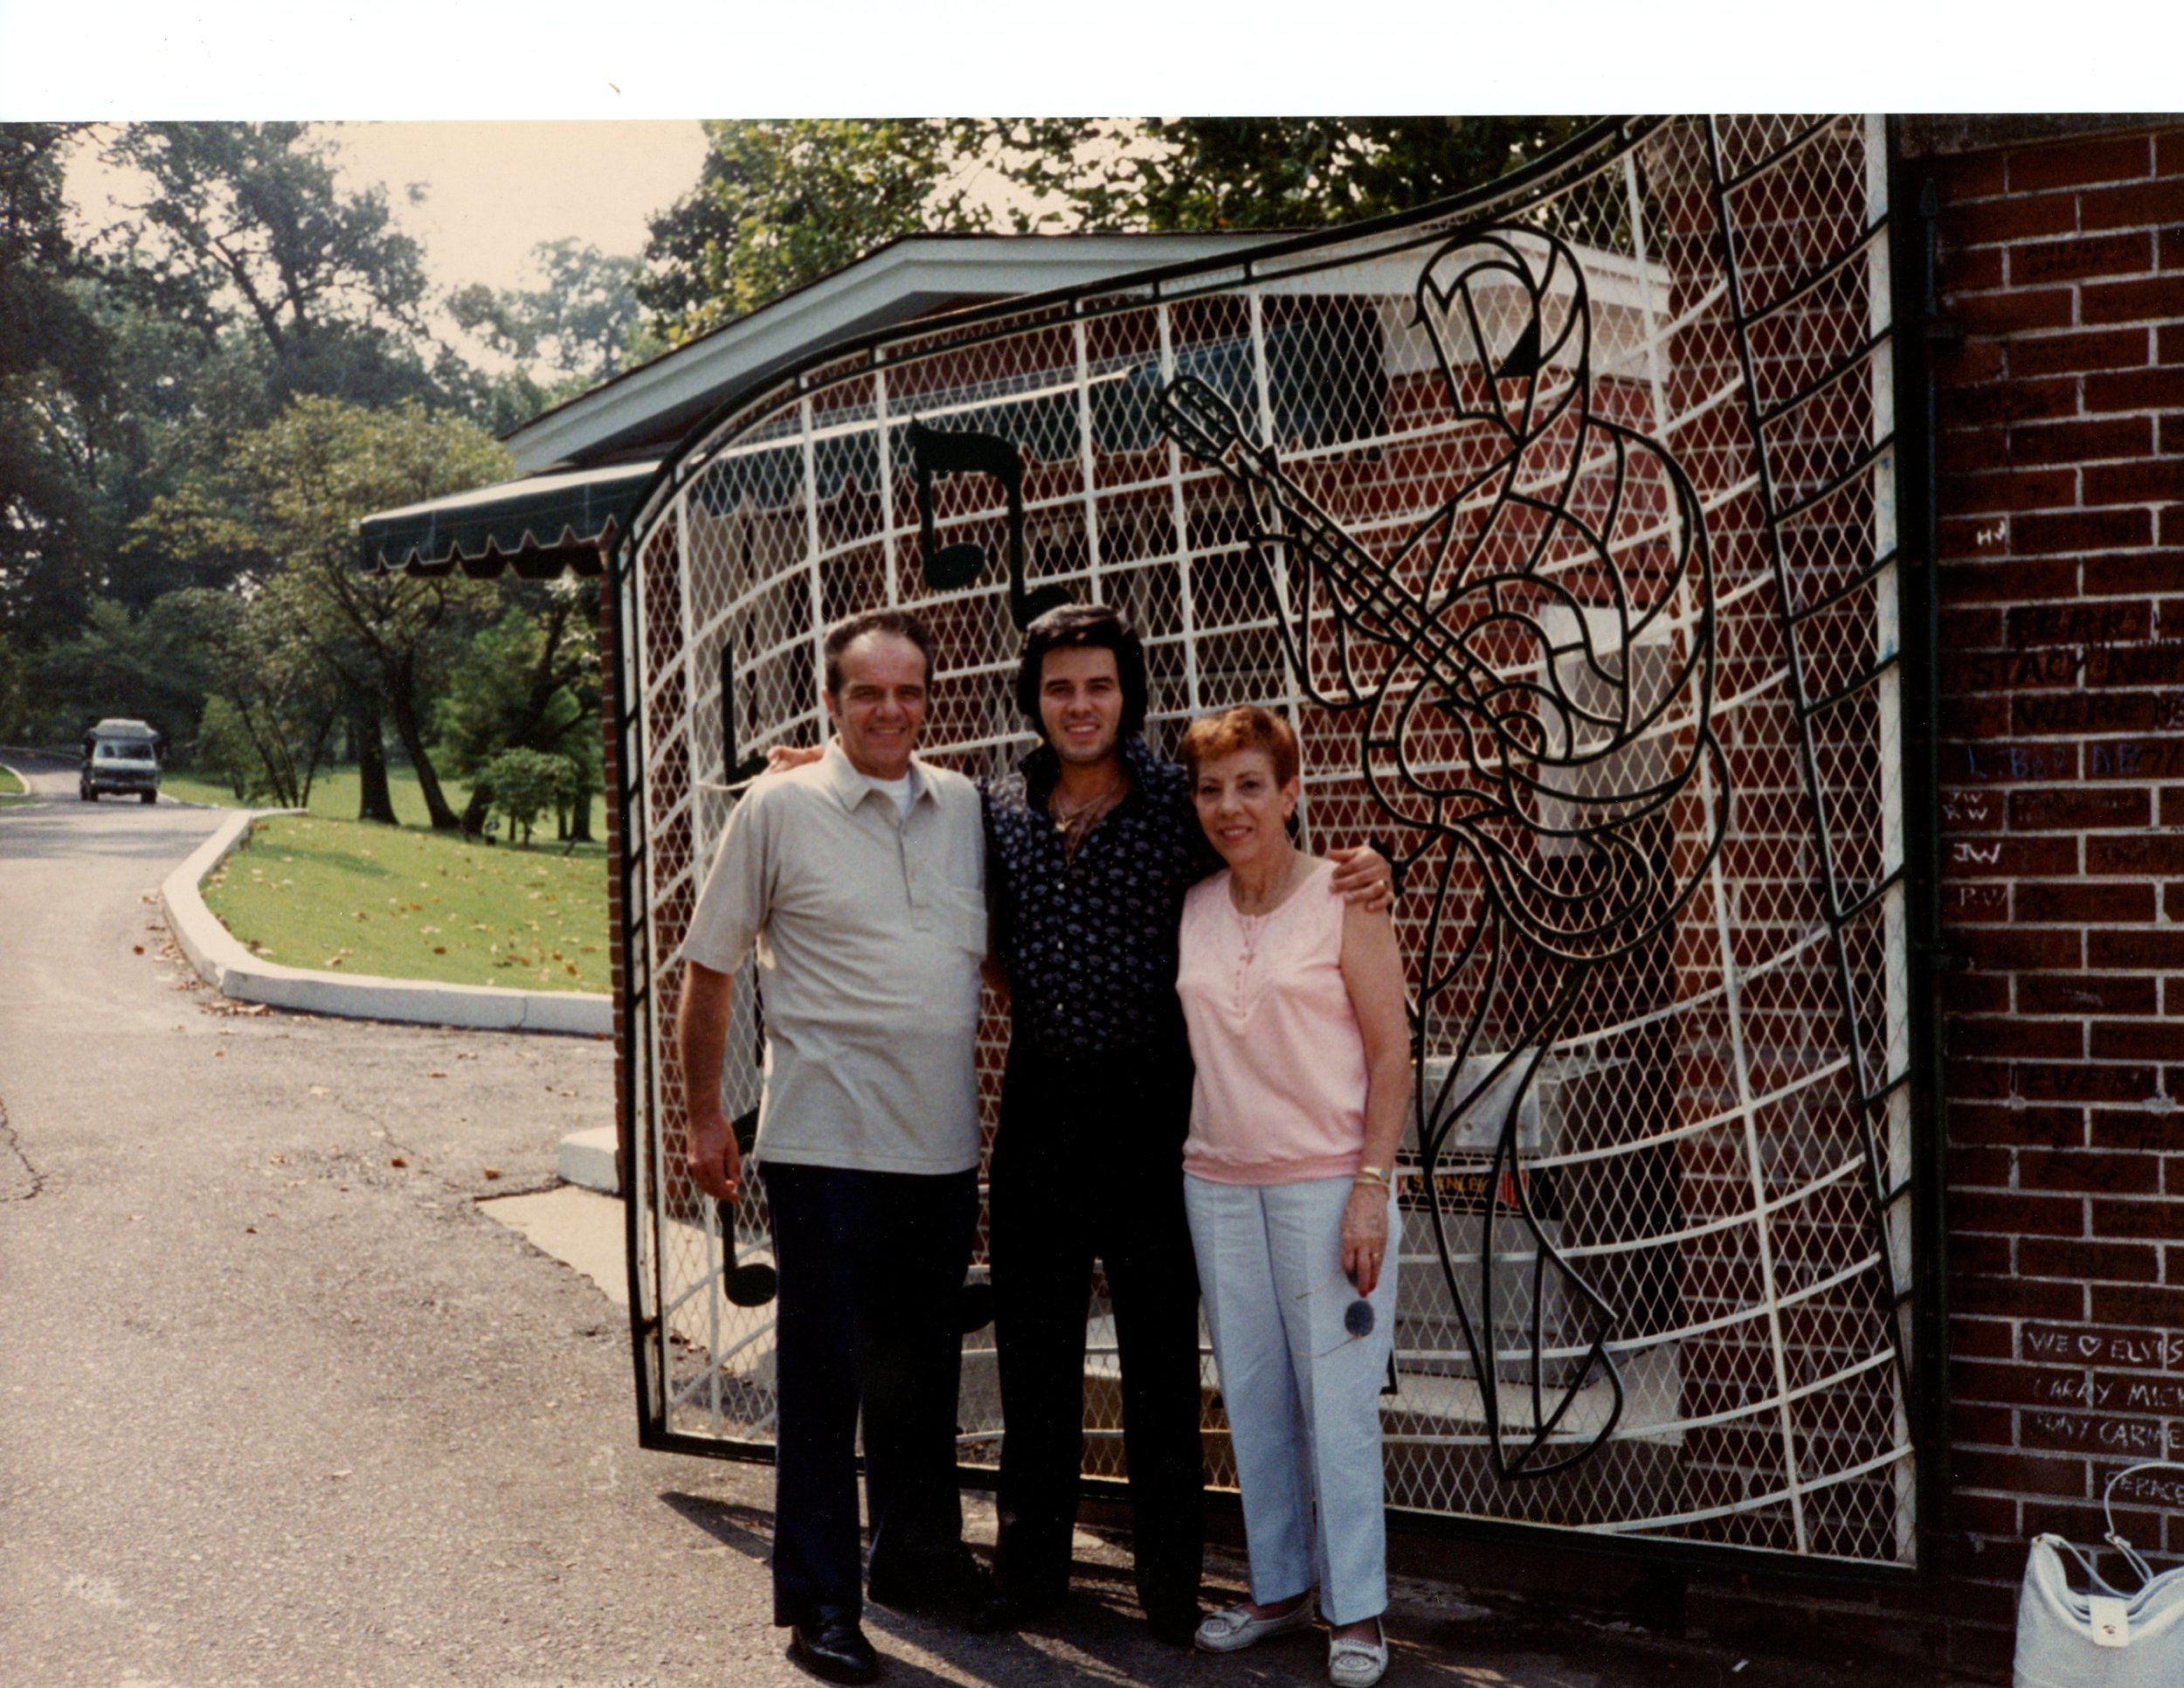 Tony with his Mom and Dad at the front gates of Graceland home of Elvis Presley in Memphis, Tennessee September 1991